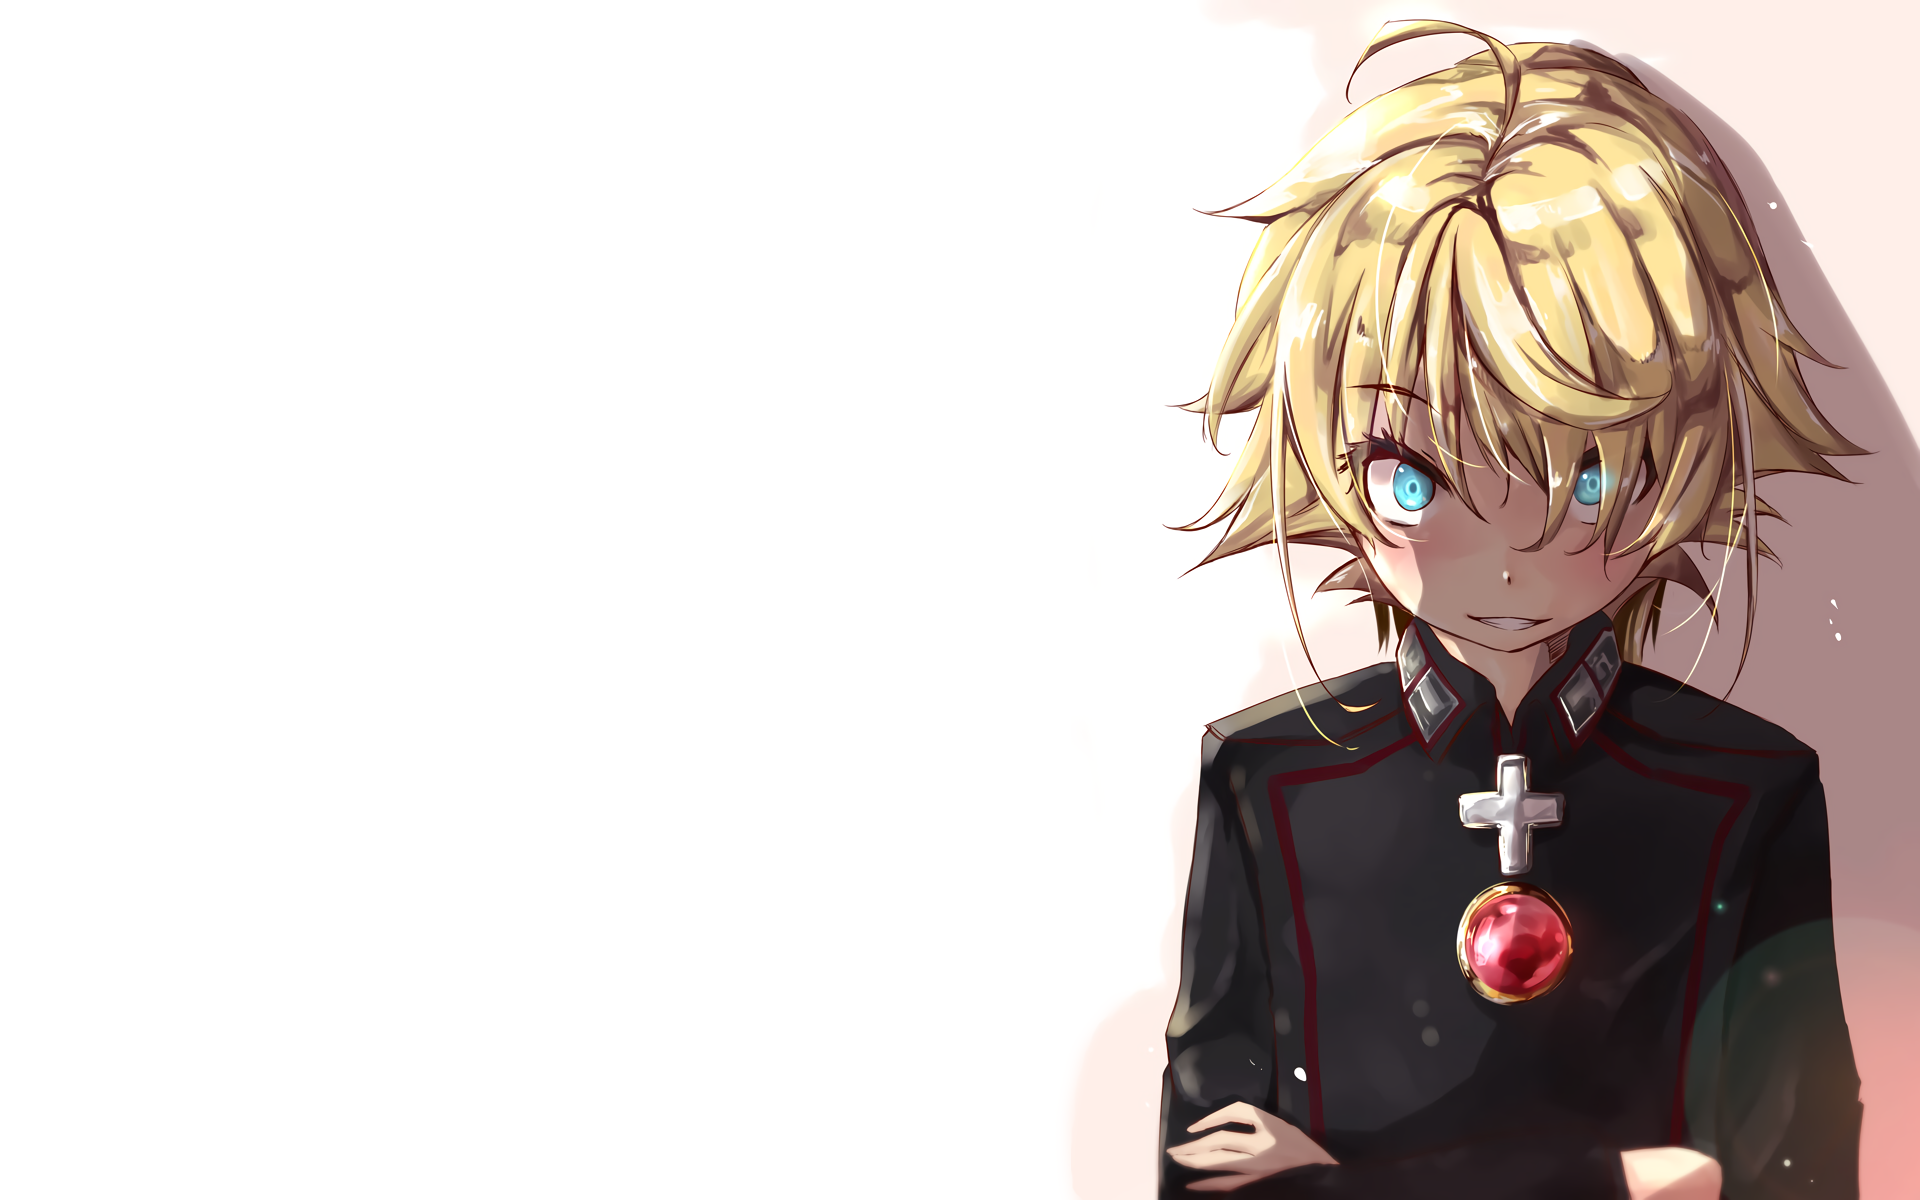 Military Anime Wallpapers Hd Quotes Backgrounds With Art: Youjo Senki HD Wallpaper